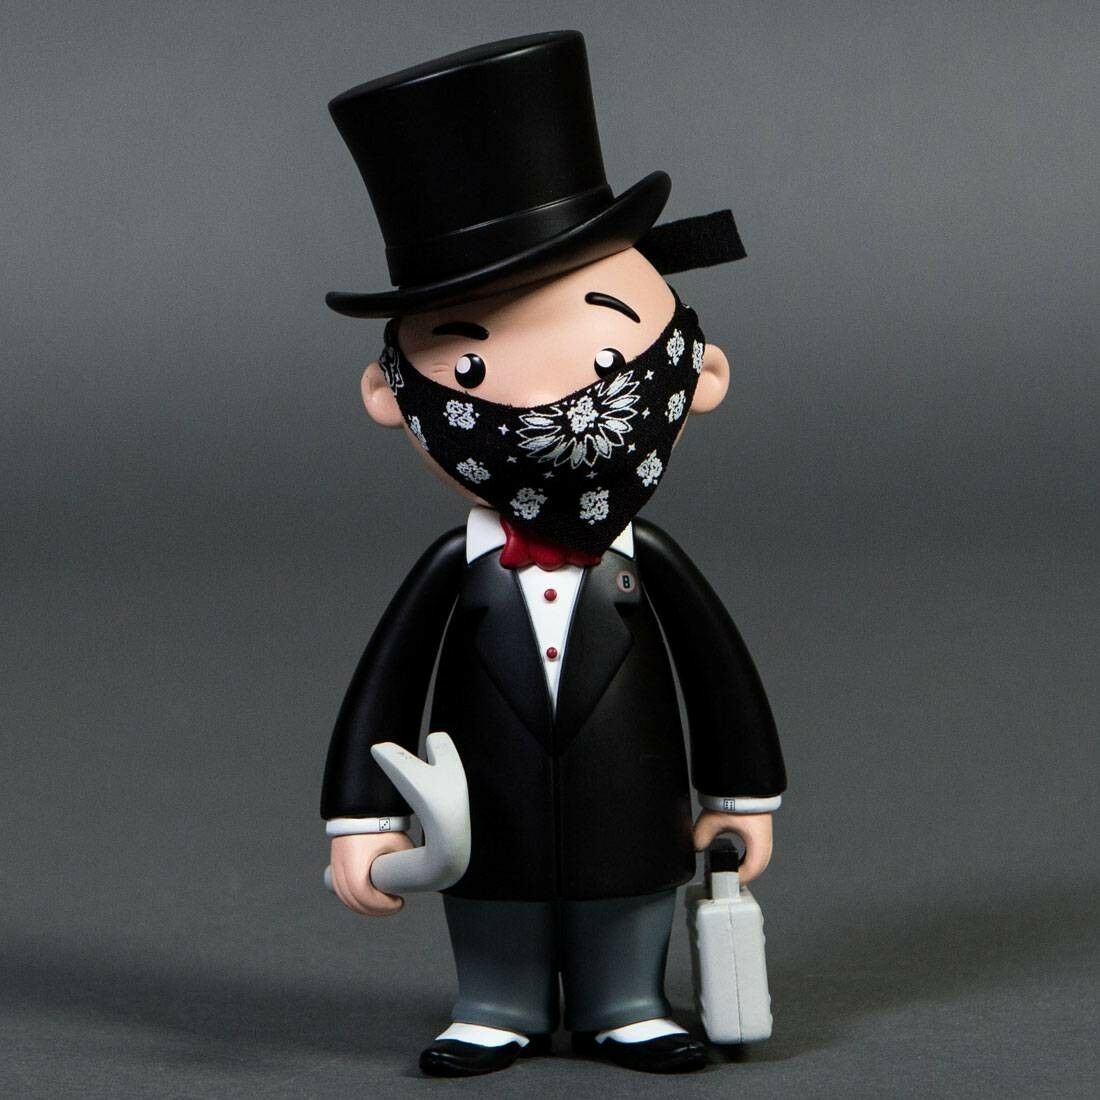 BAIT x Monopoly x Switch Collectibles Mr Pennybags 7 Inch Vinyl Figure - Standar